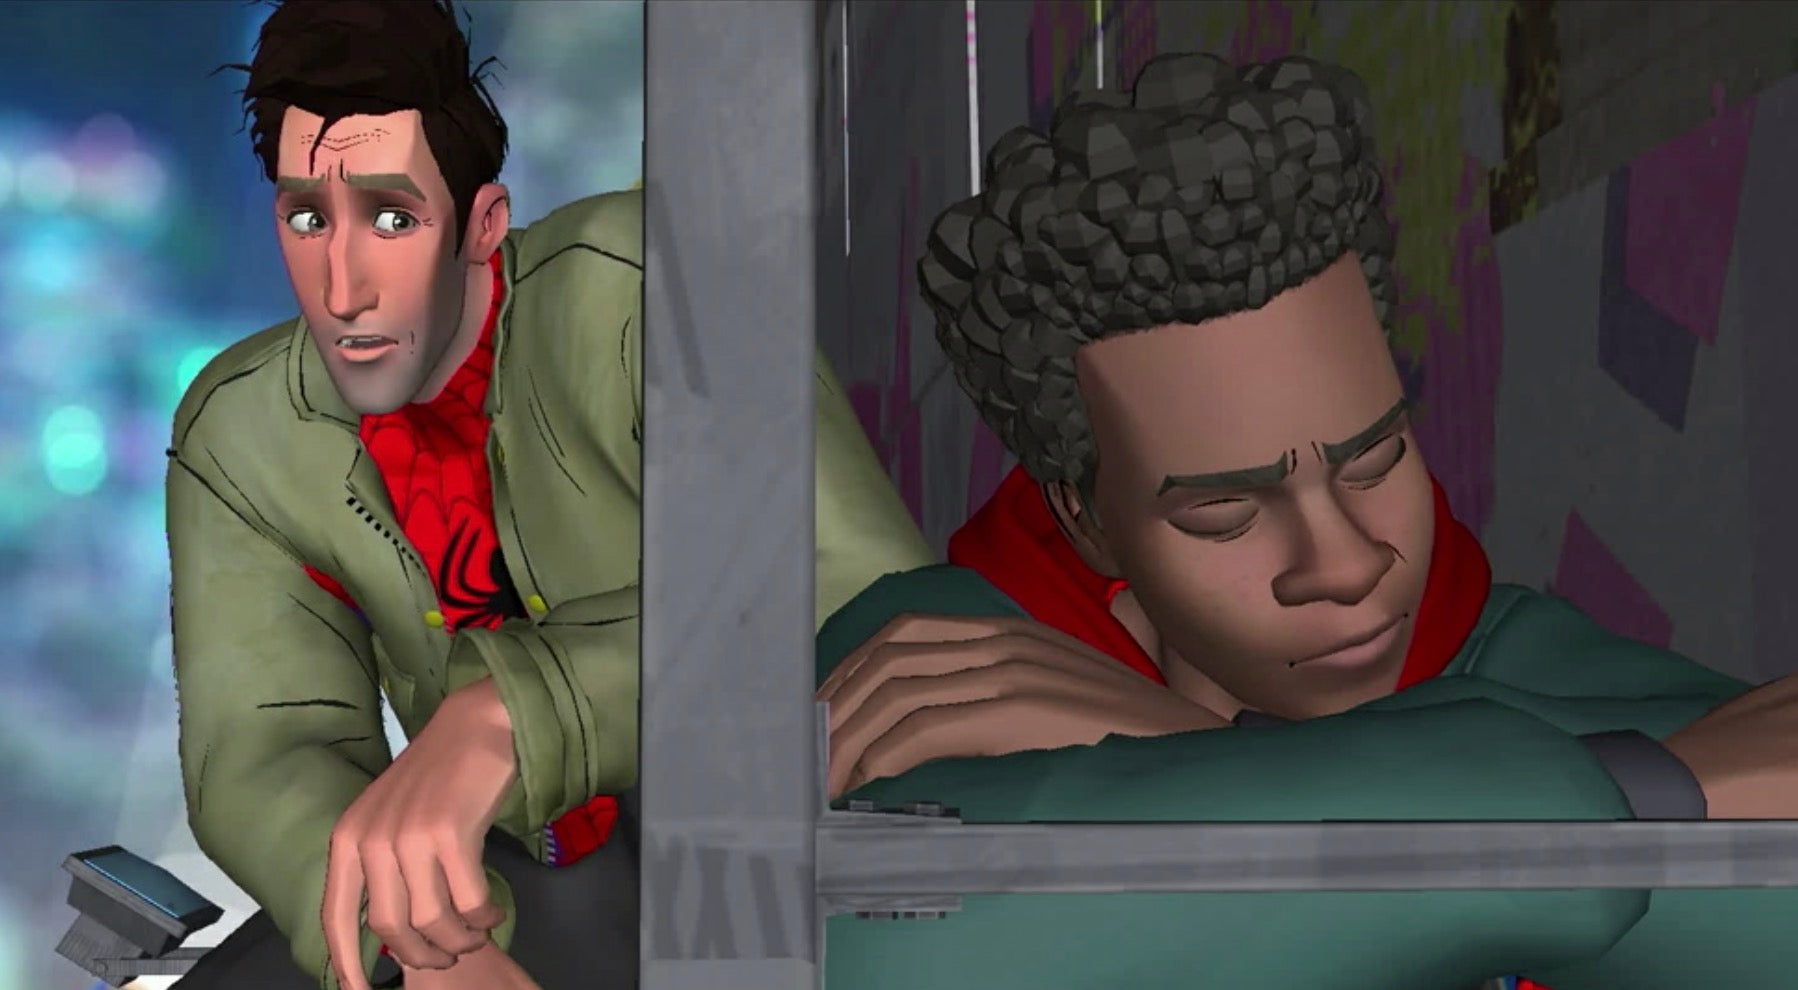 This Exclusive Into The Spider-Verse Deleted Scene Features Another Emotional Spider-Pep Talk